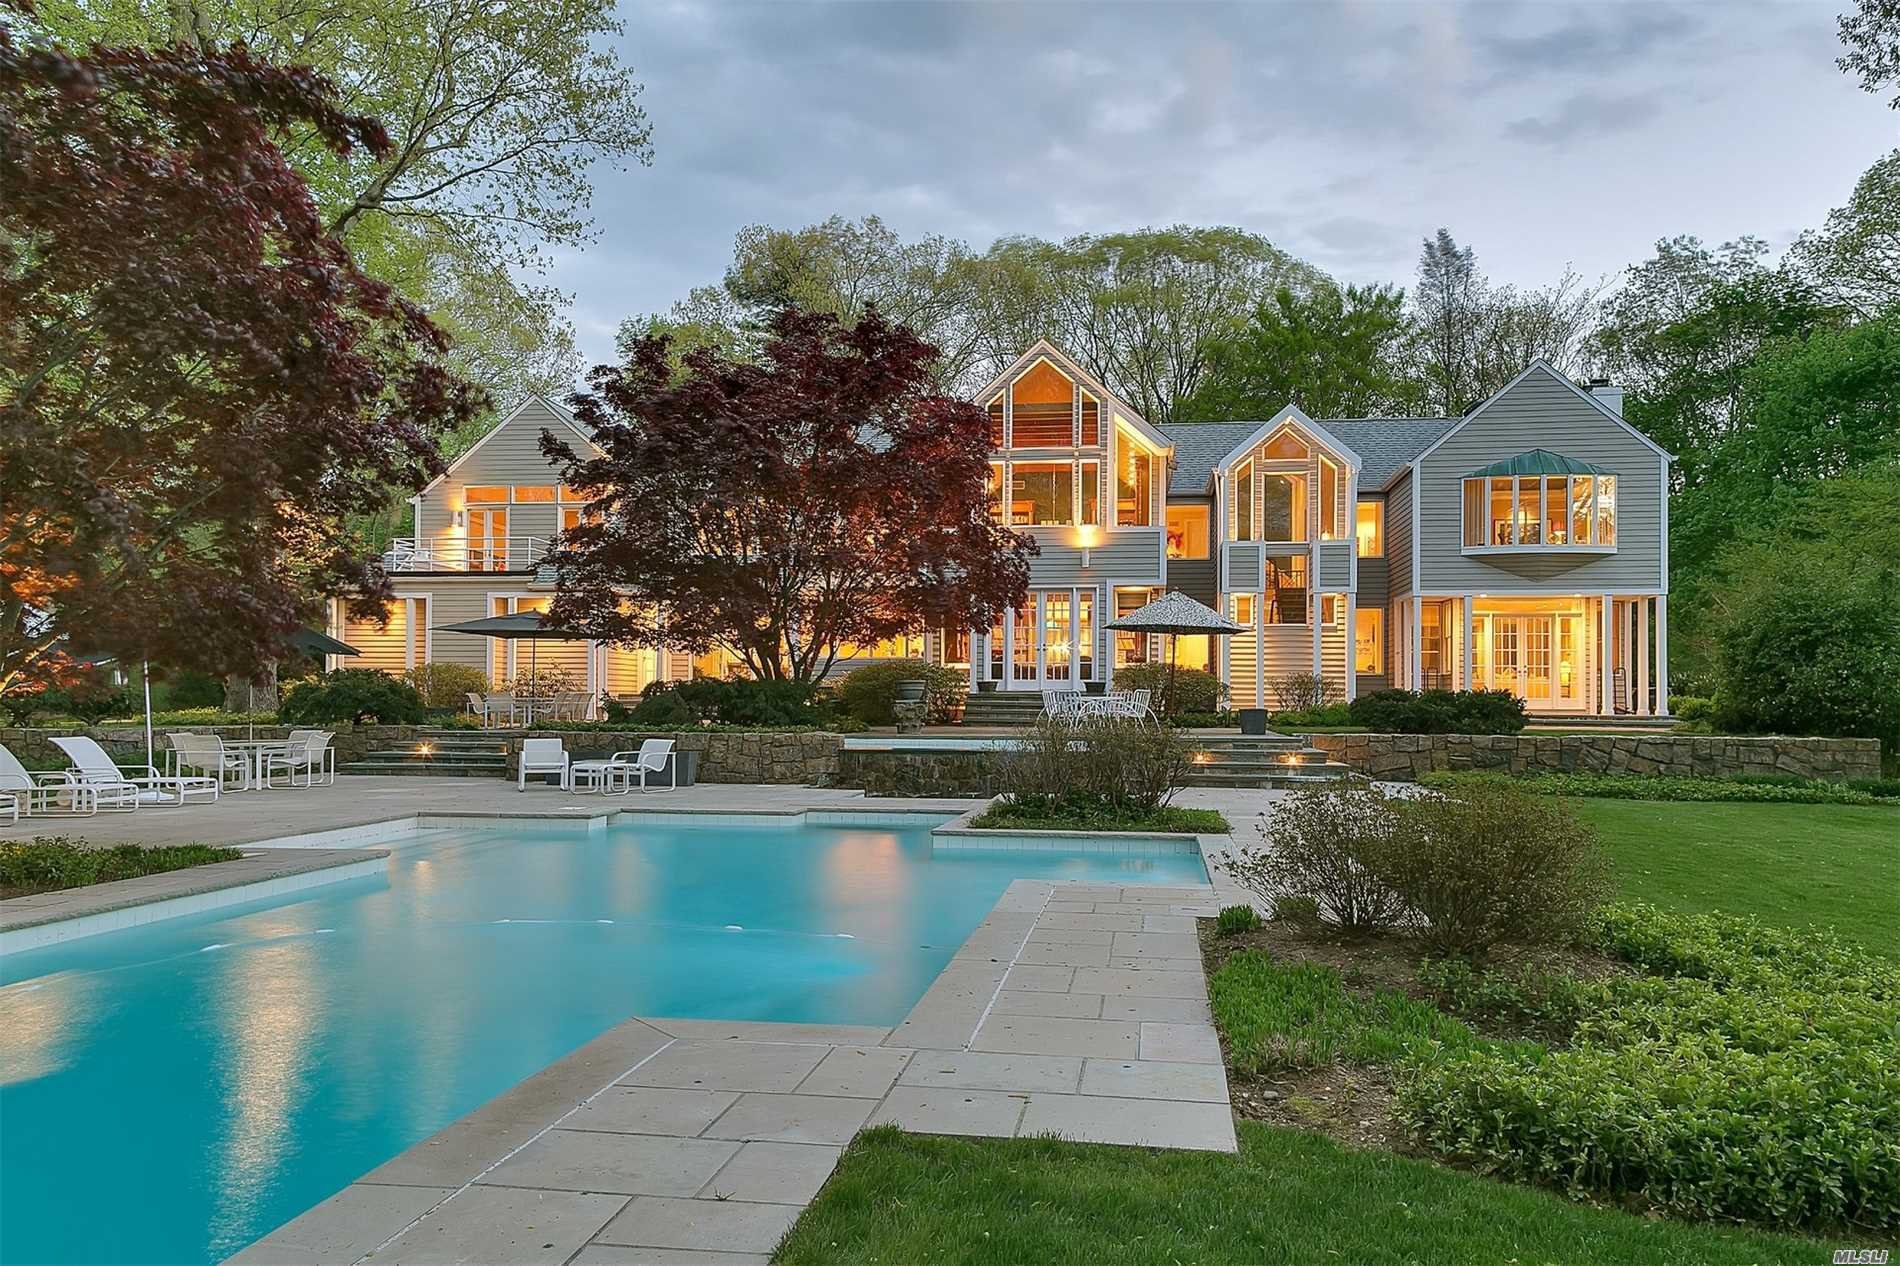 Incredible Award Winning Design By Noted Architect Brian Shore. Long Drive To A Magnificent 11 Room, Sun-Filled Home With High Ceilings, A Second Story Library All On 5 Acres Of Pristine Property With A Four Car Garage, Pond, Dock, Pool And Waterfall.